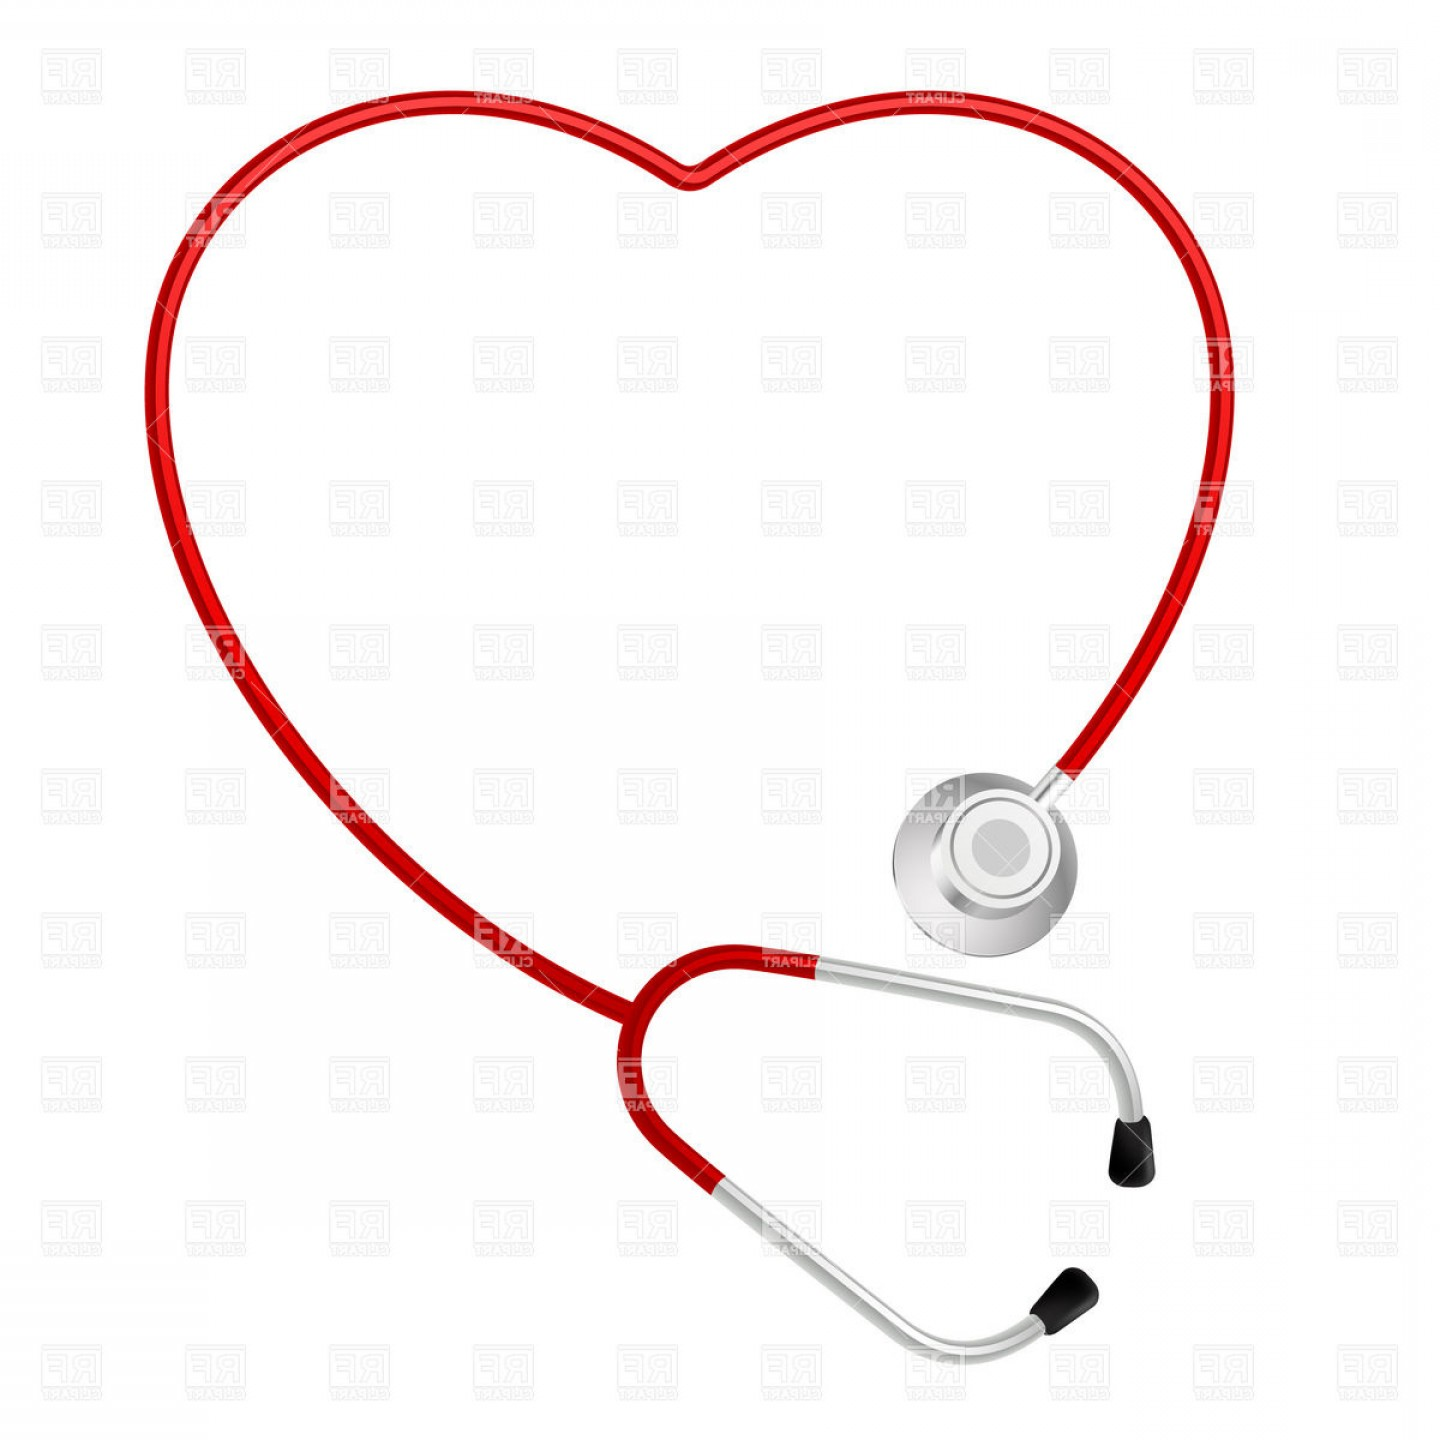 1440x1440 Heart Shaped Stethoscope Vector Clipart Createmepink